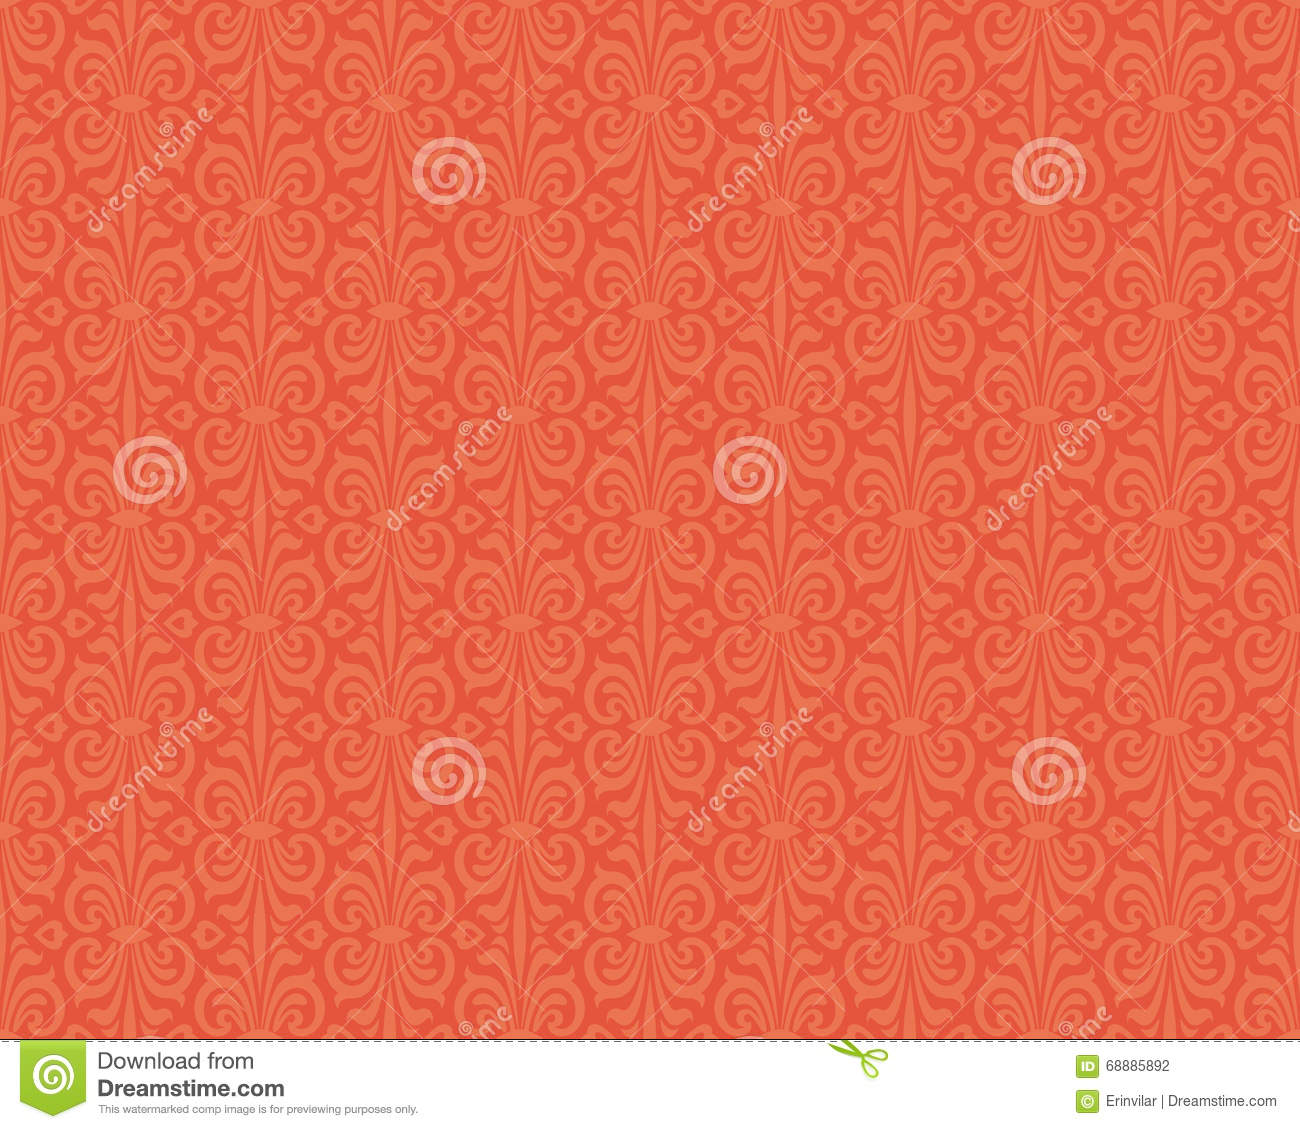 Modele Colore Orange De Fond De Papier Peint De Vintage De Retro